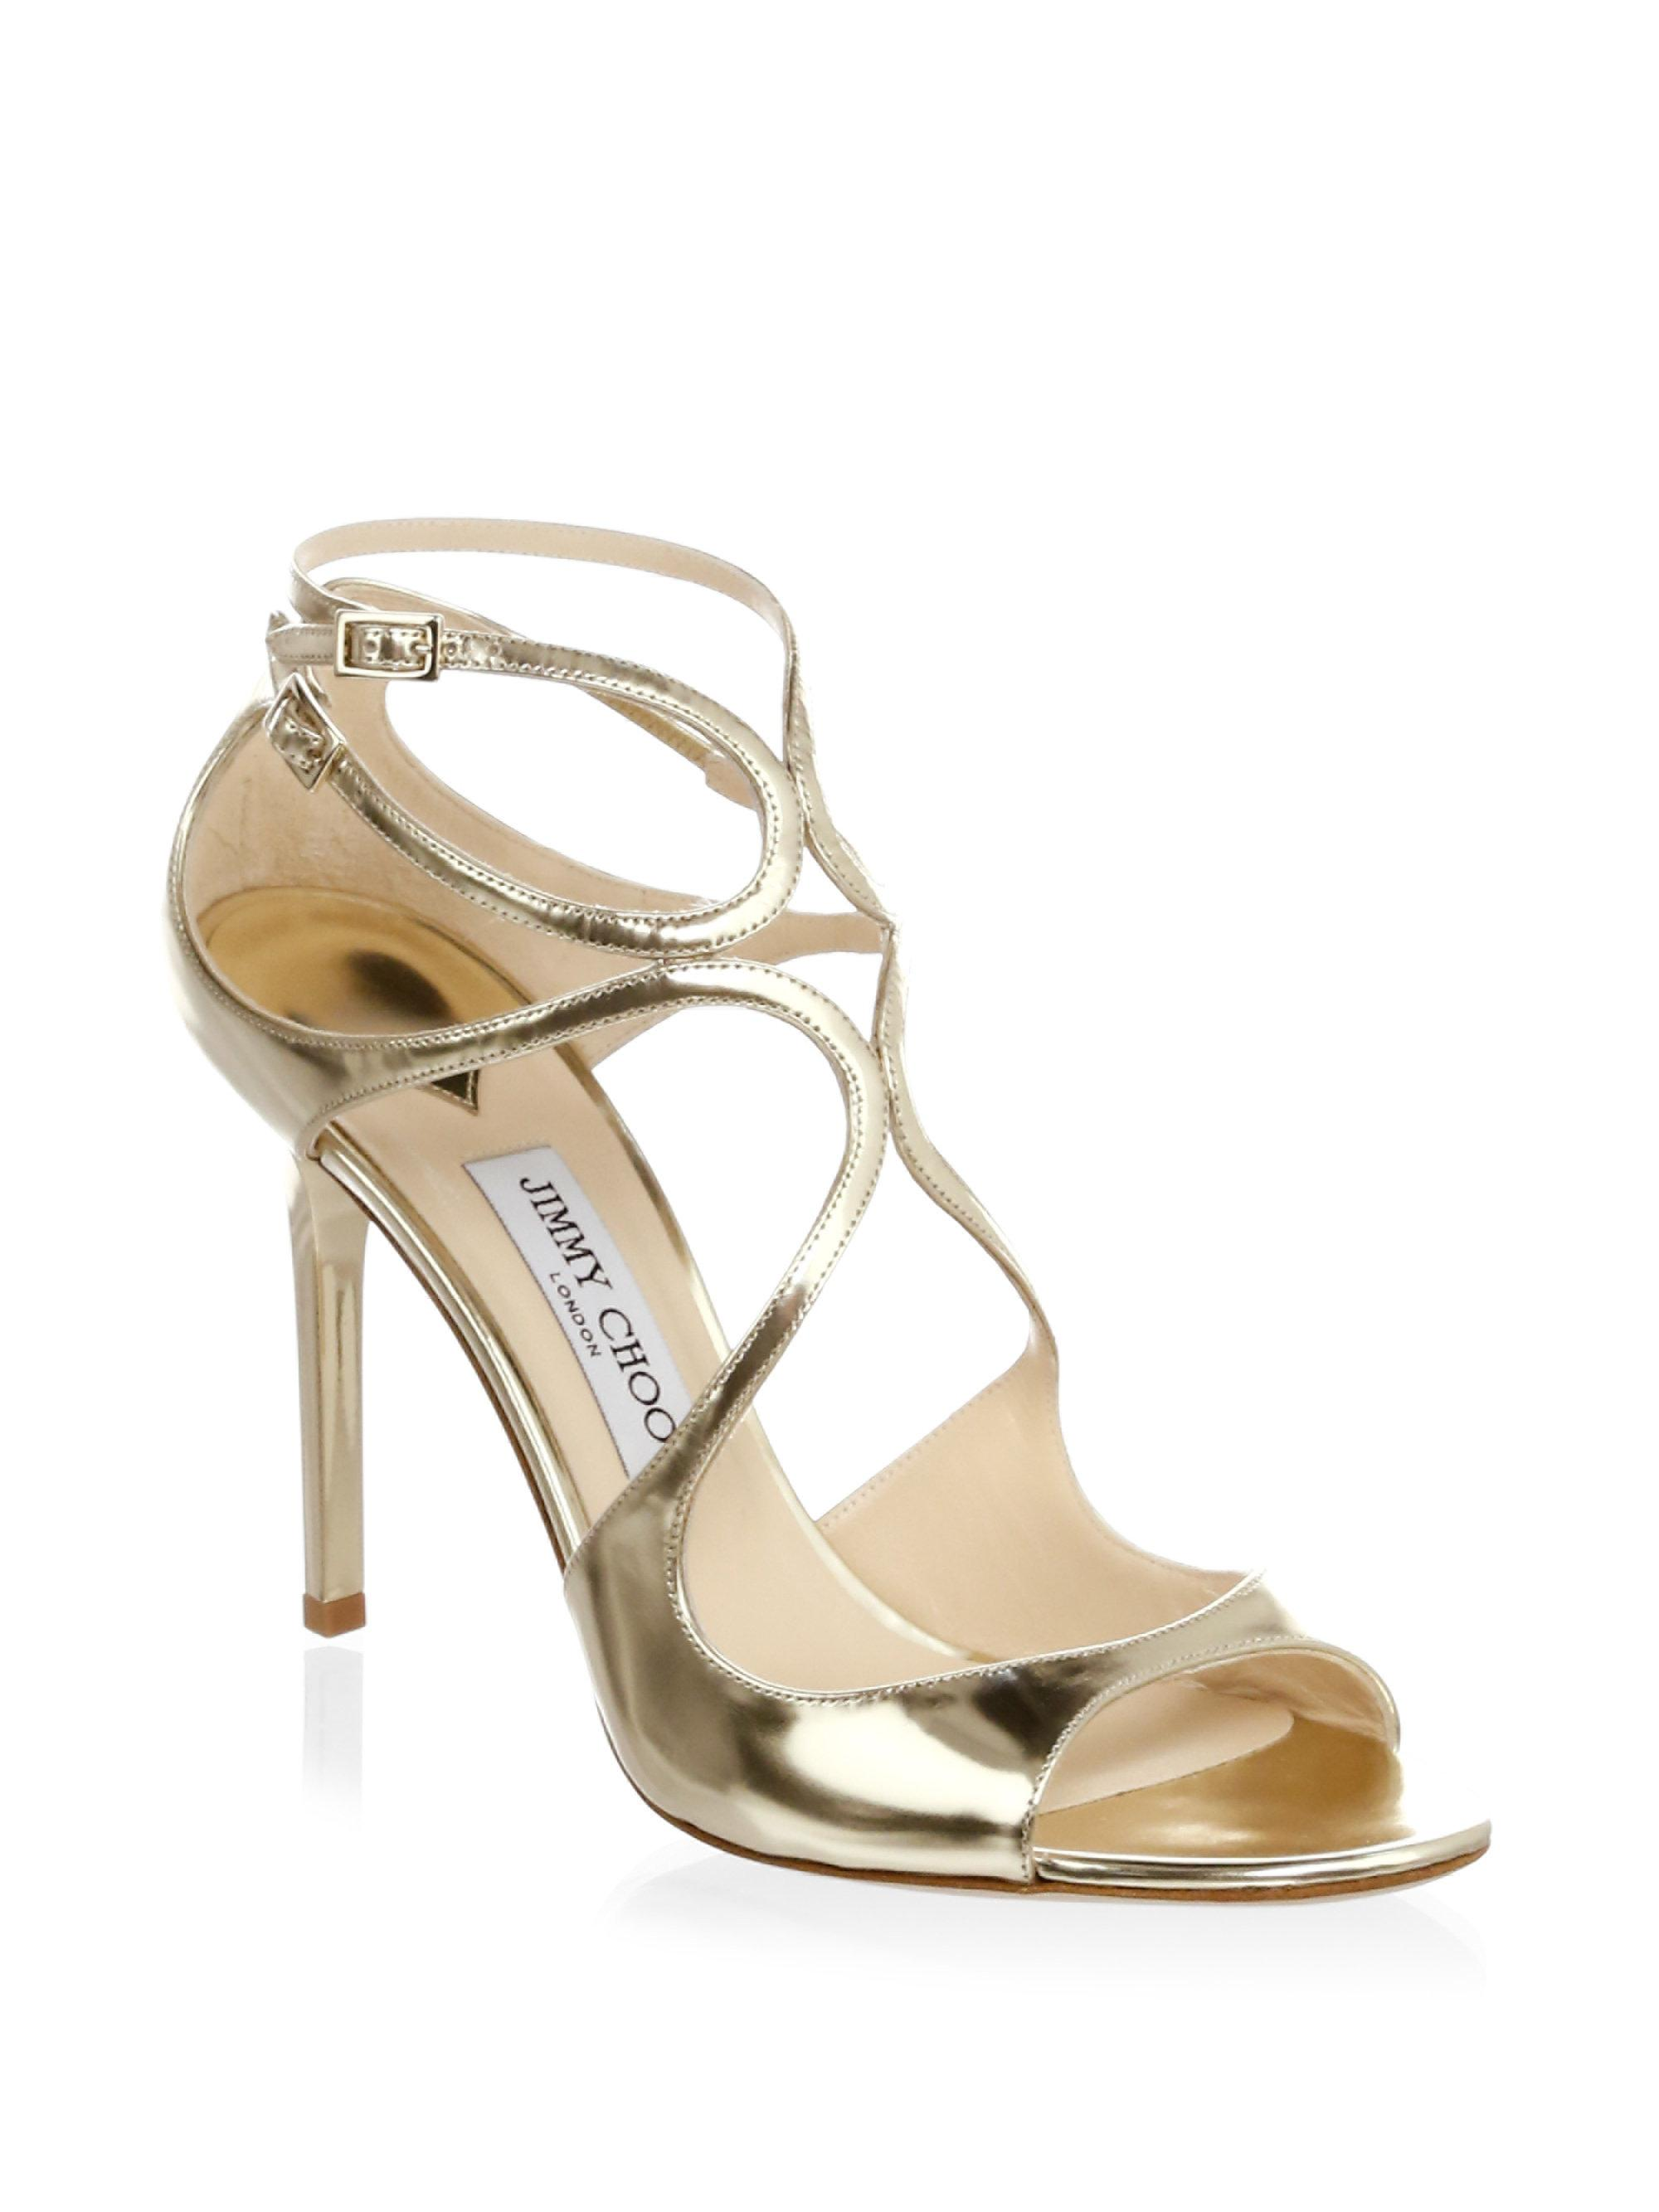 Jimmy Choo Pat Crossover Sandals discounts for sale DtRgicEqA